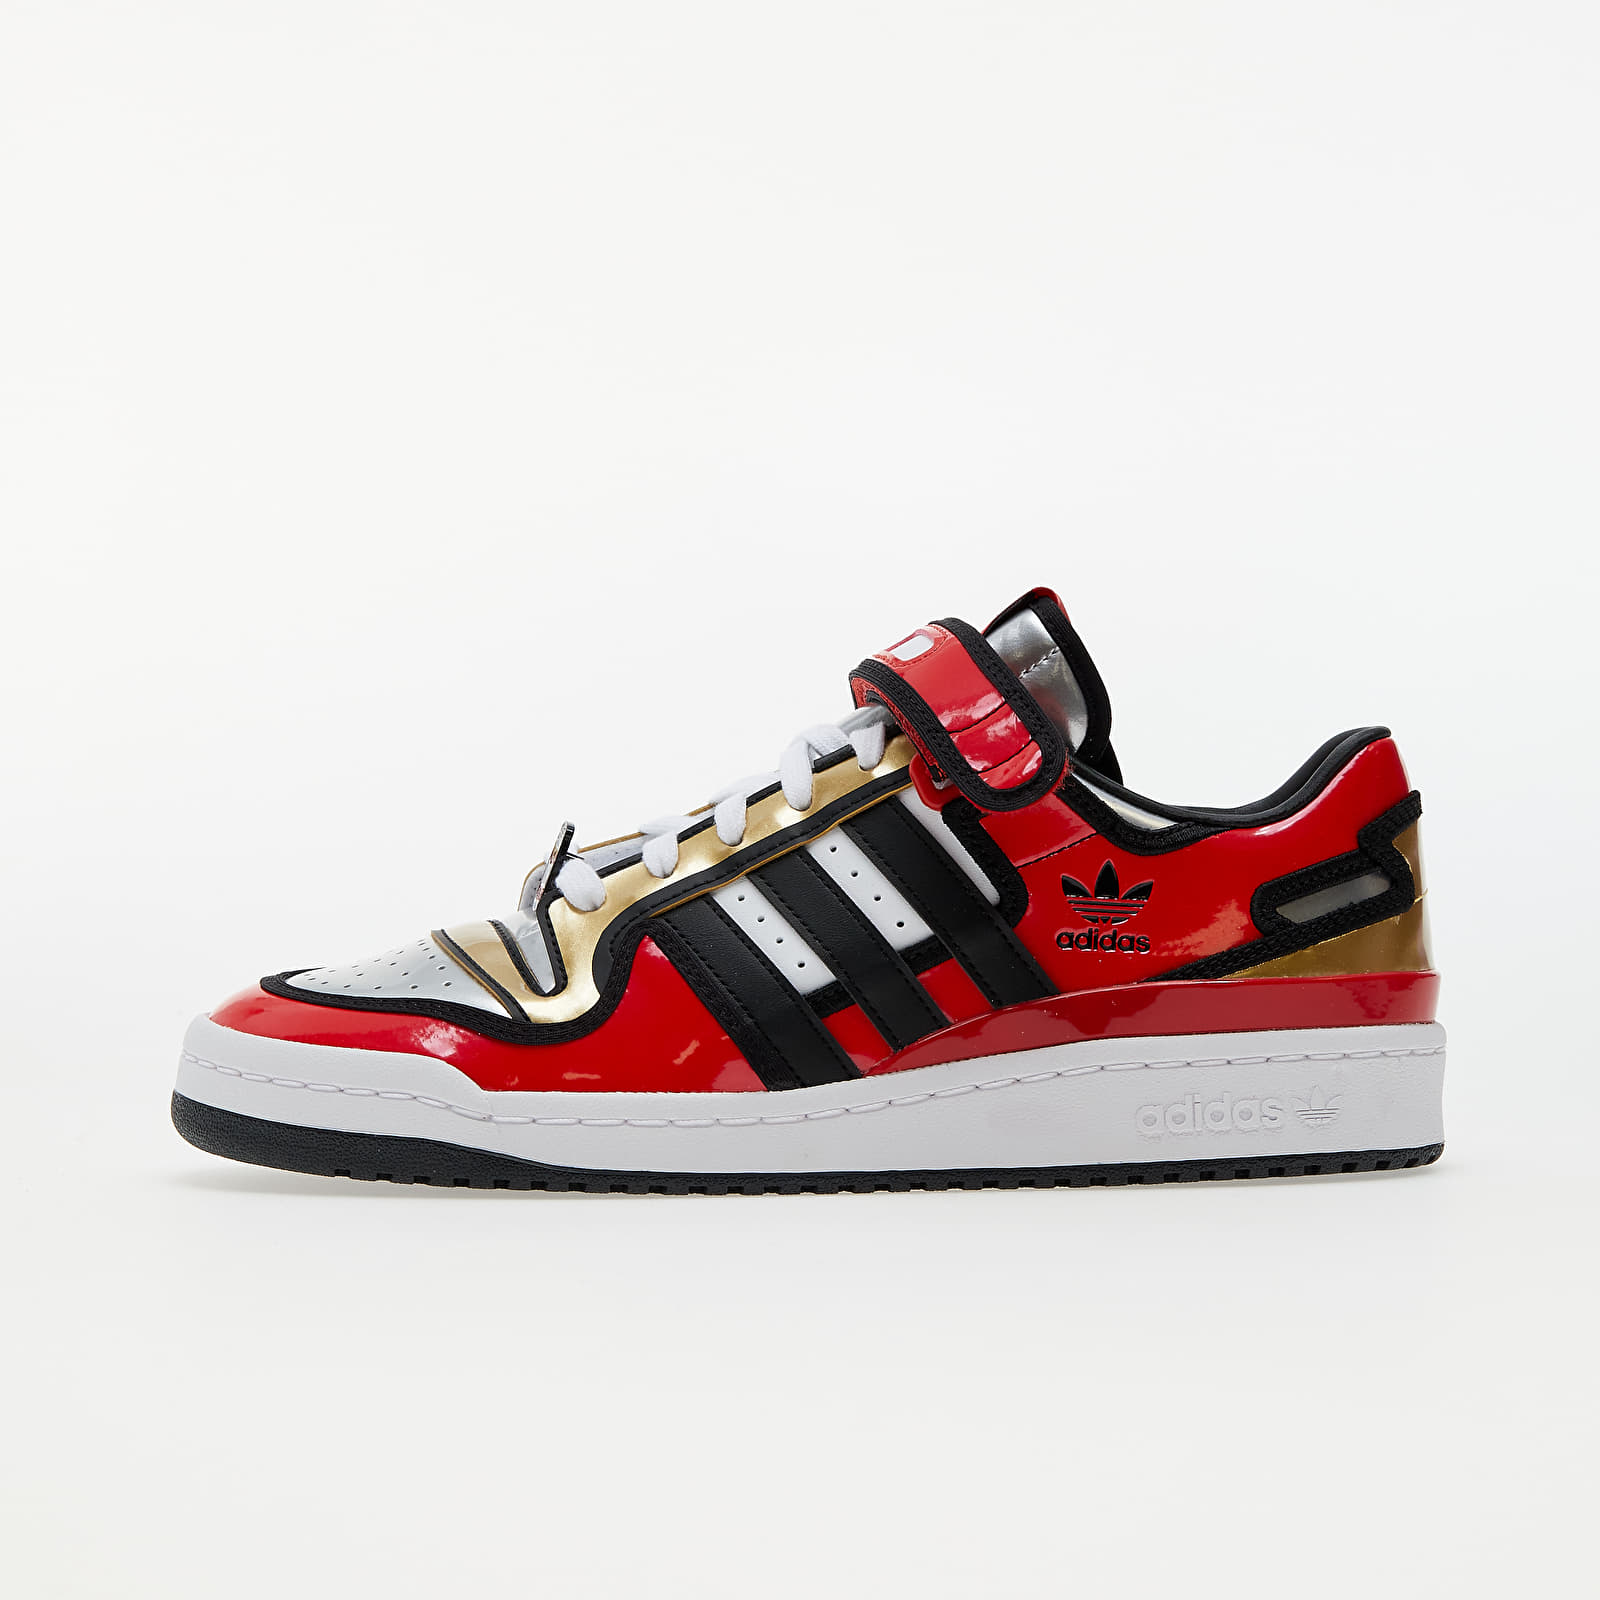 adidas x The Simpsons Forum 84 Low Red/ Core Black/ Ftw White EUR 42